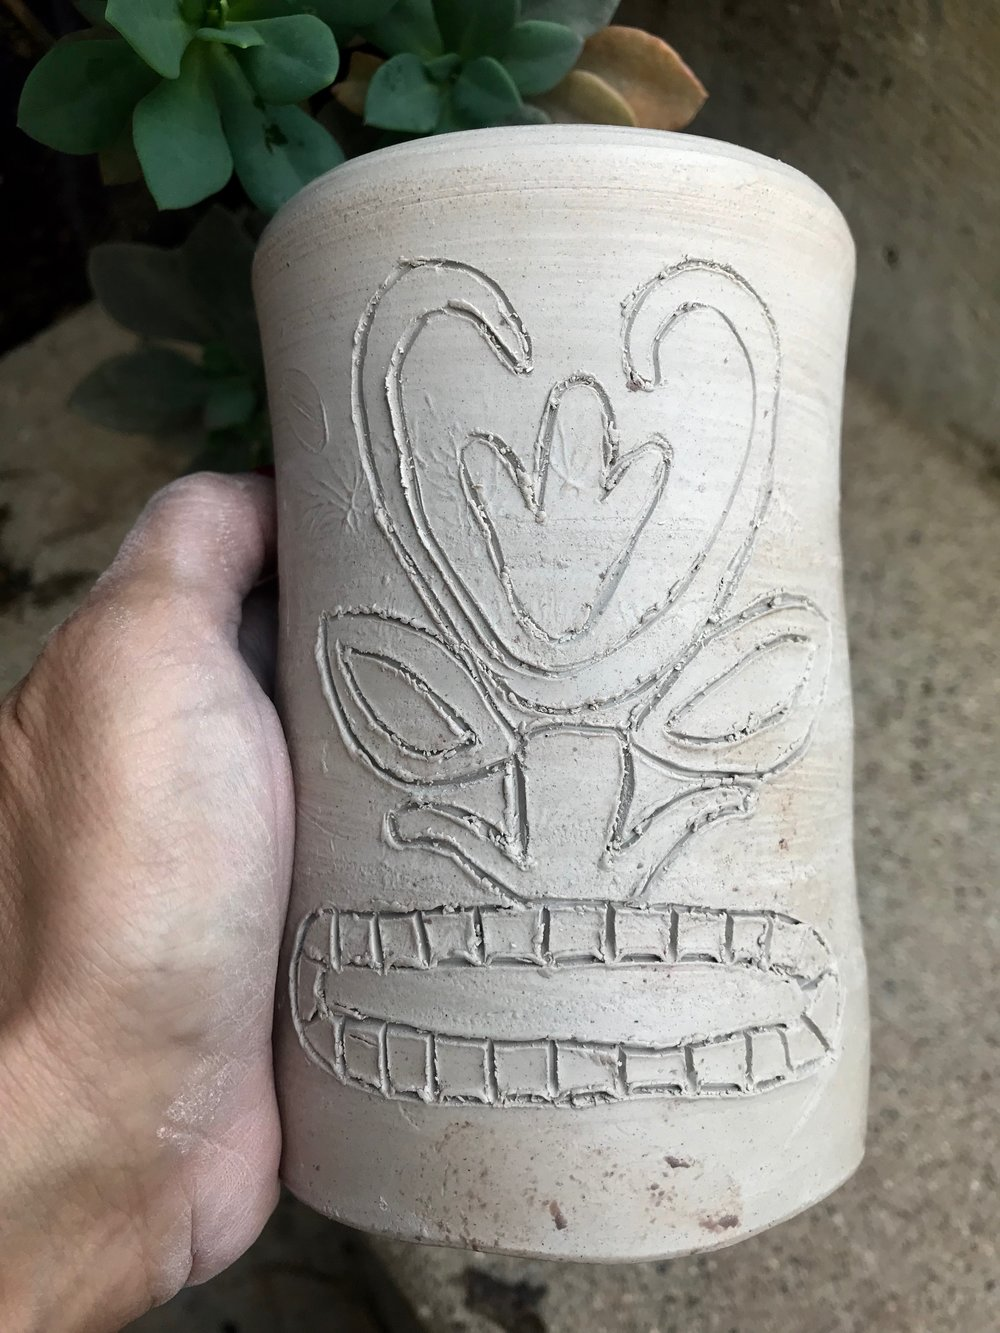 Day 353. Etched a Tiki Face into a piece of Pottery I threw